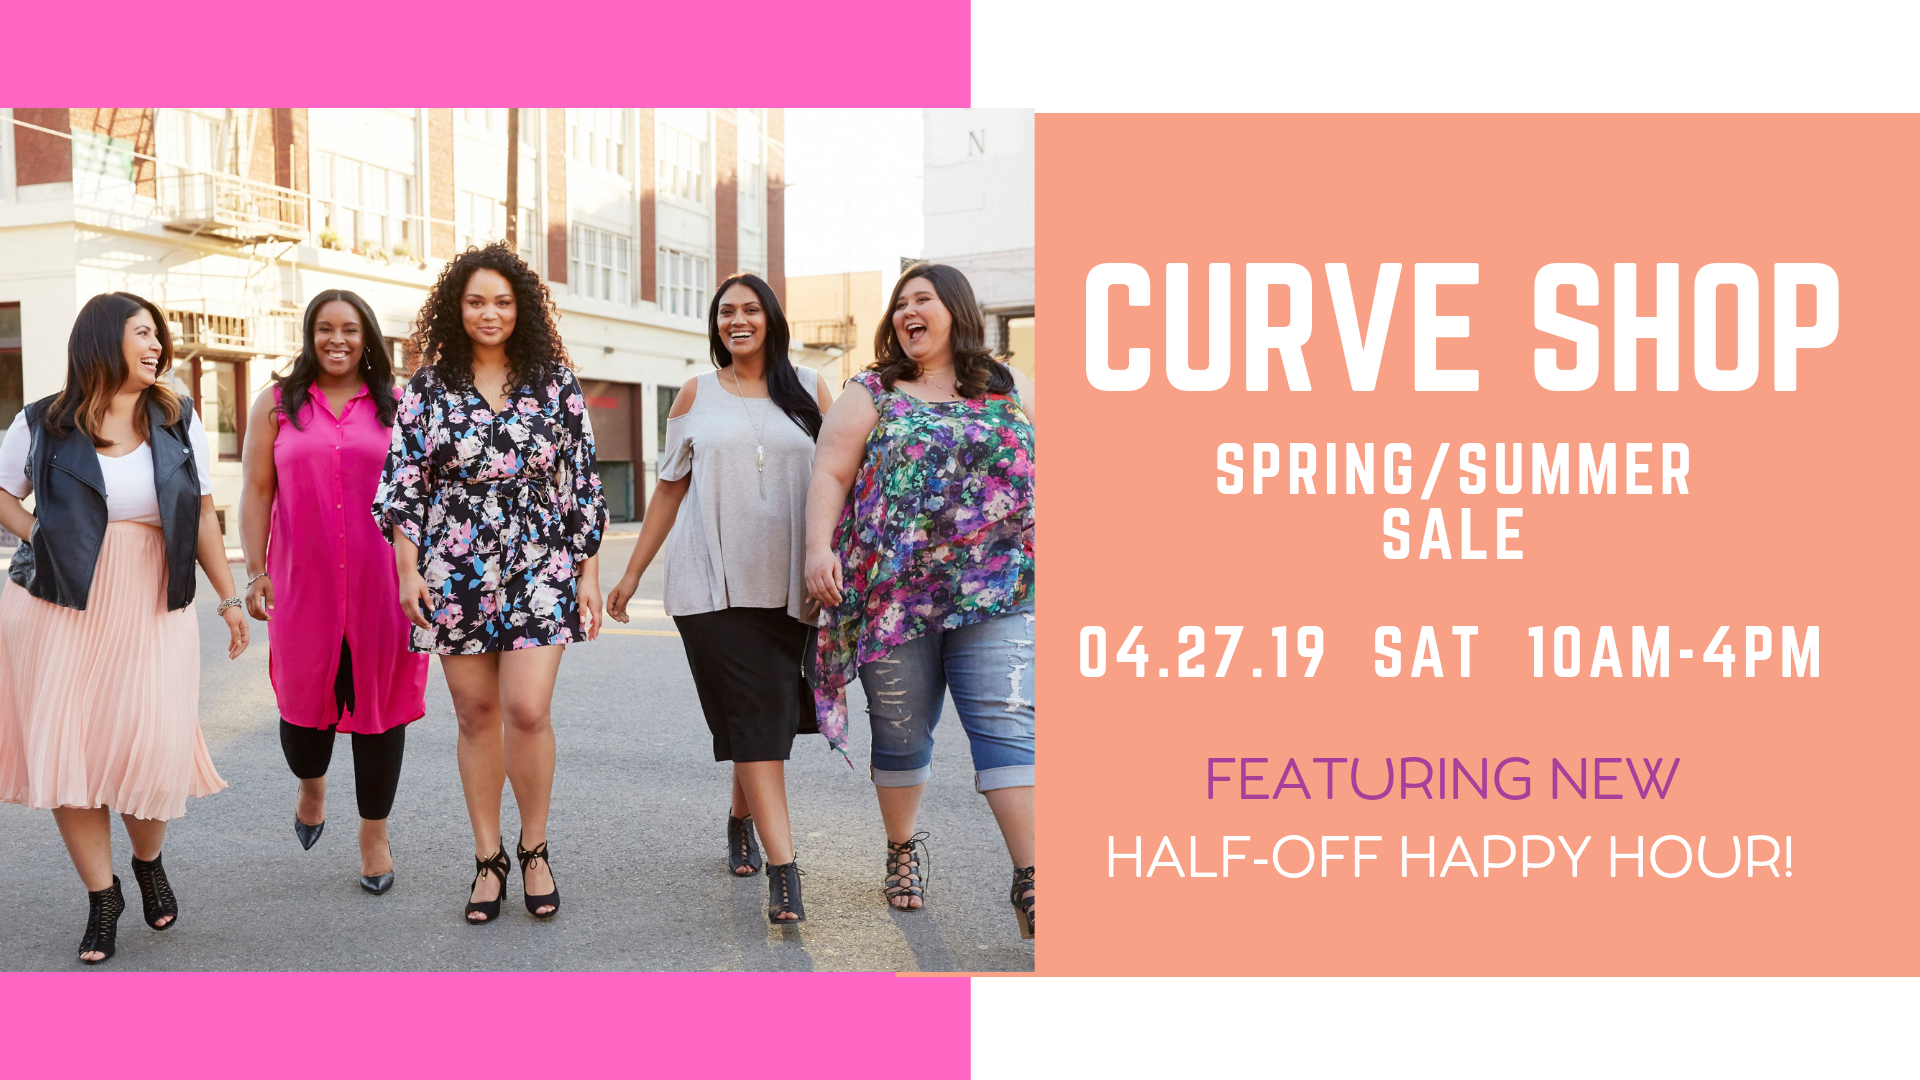 a5c653b8432af Curve Shop Spring/Summer Plus Size Clothing Consignment Sale ...